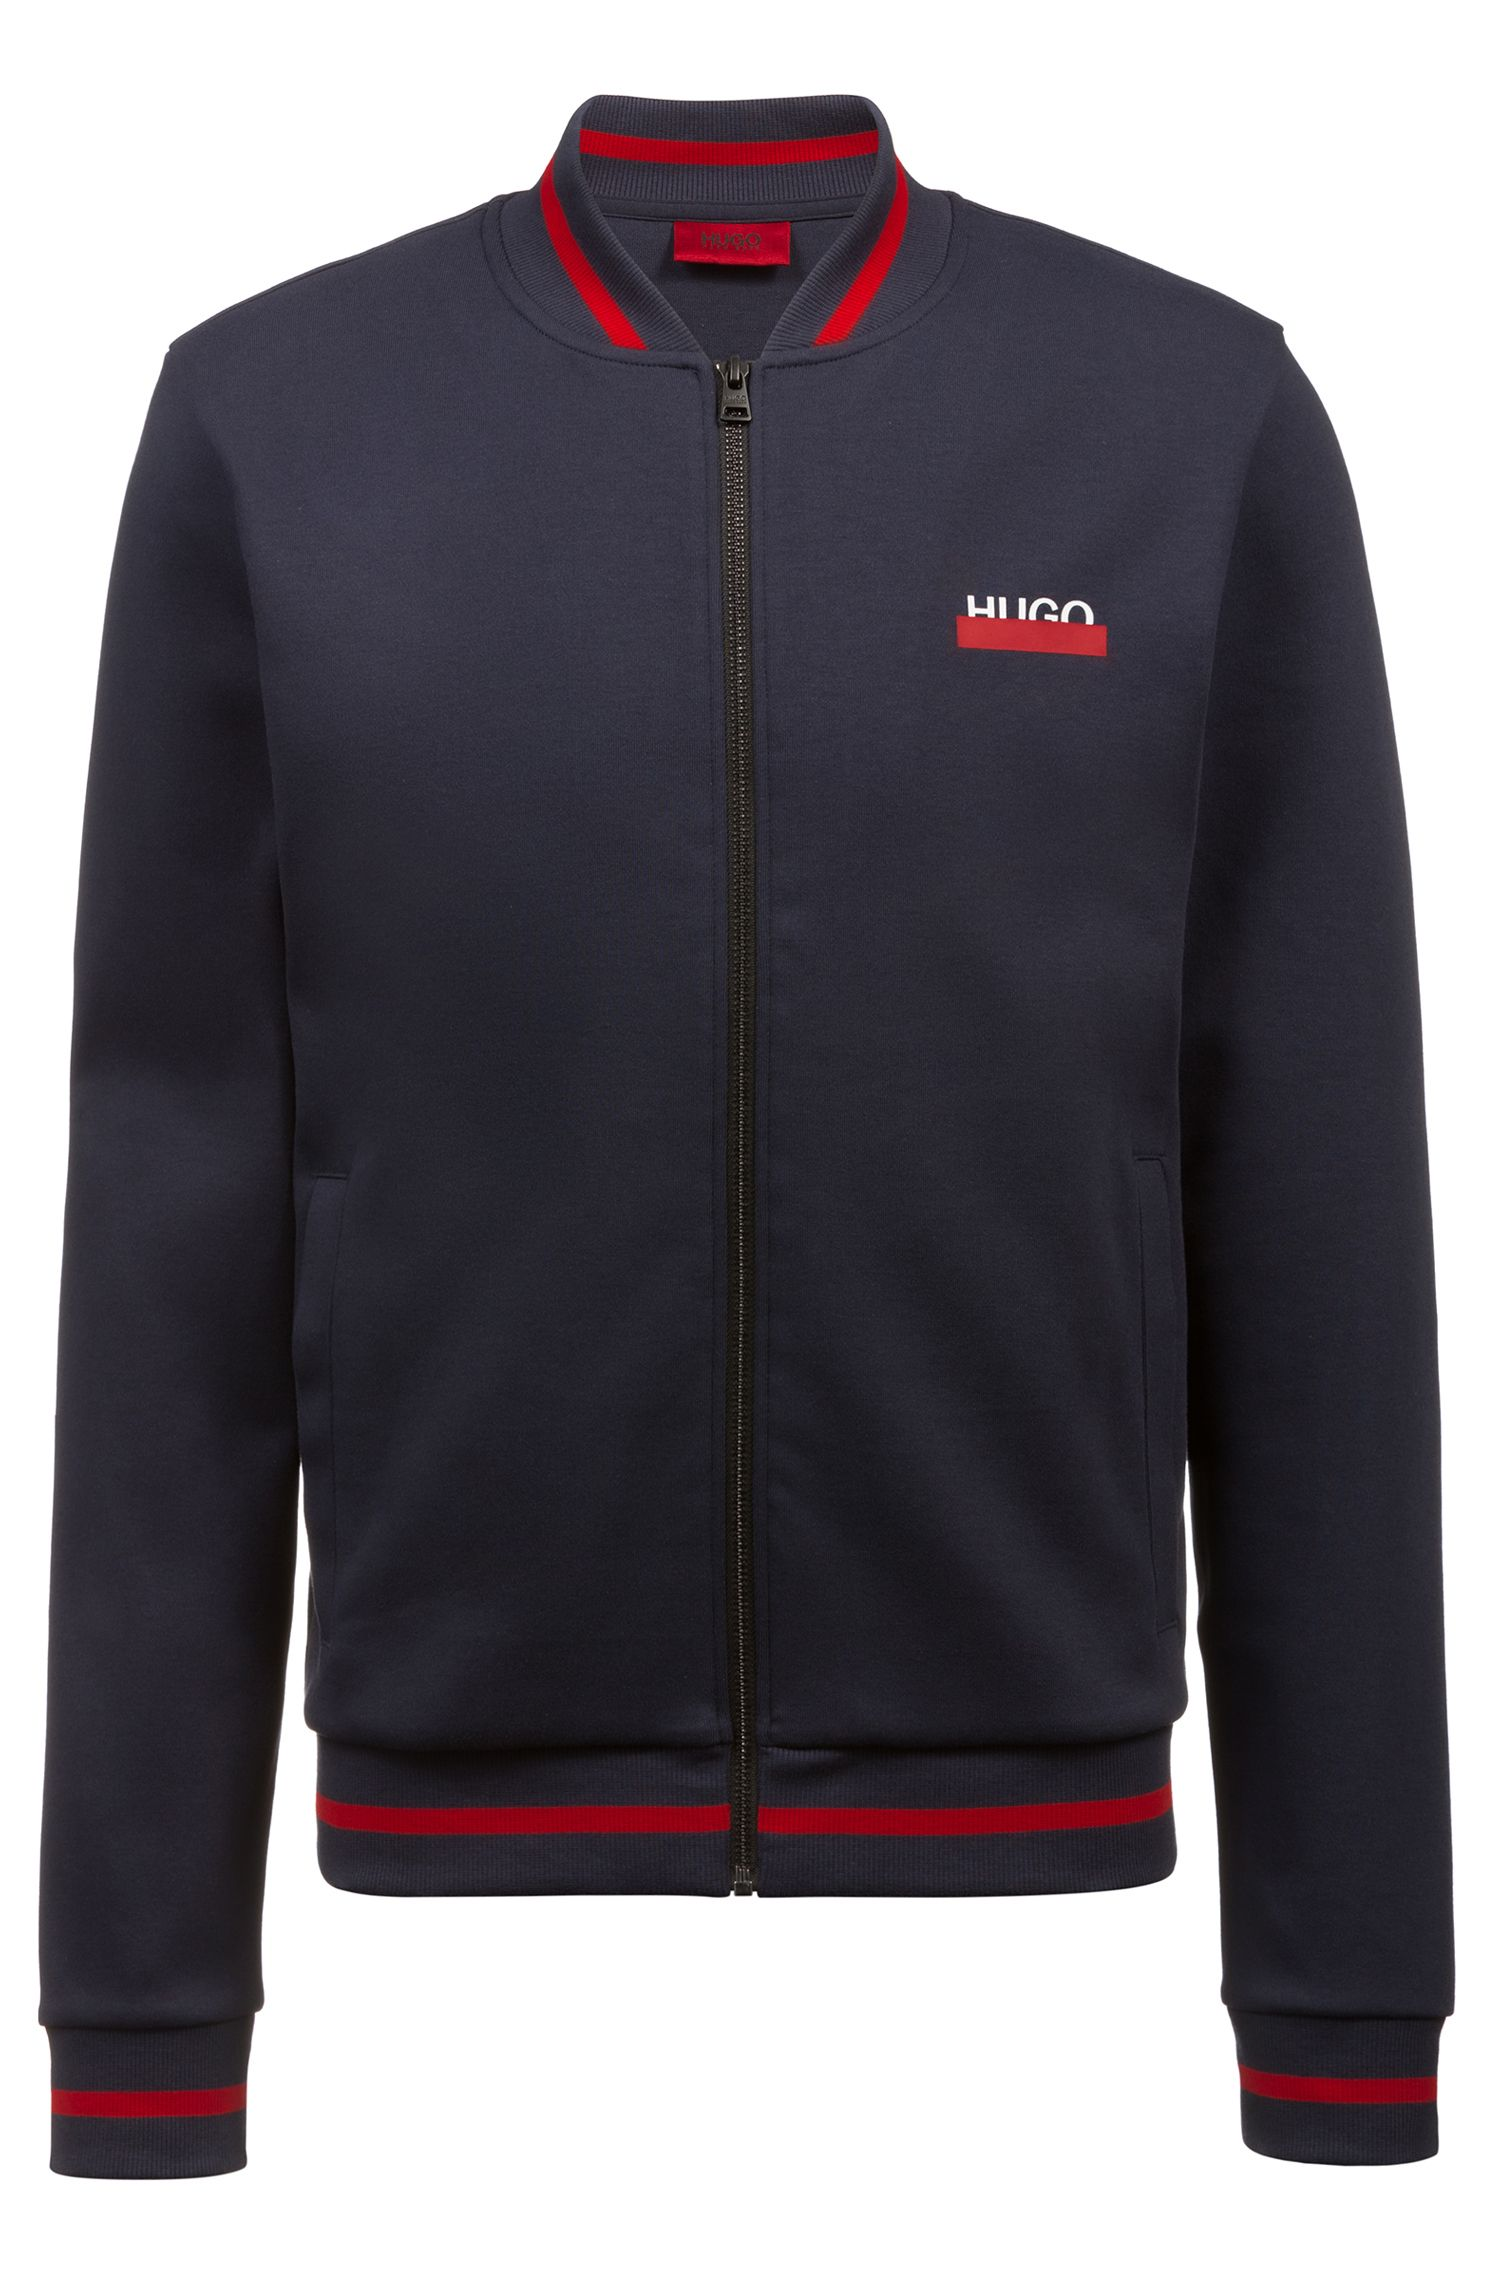 Hugo Boss - Sweatjacke aus Interlock-Baumwolle mit College-Kragen - 1